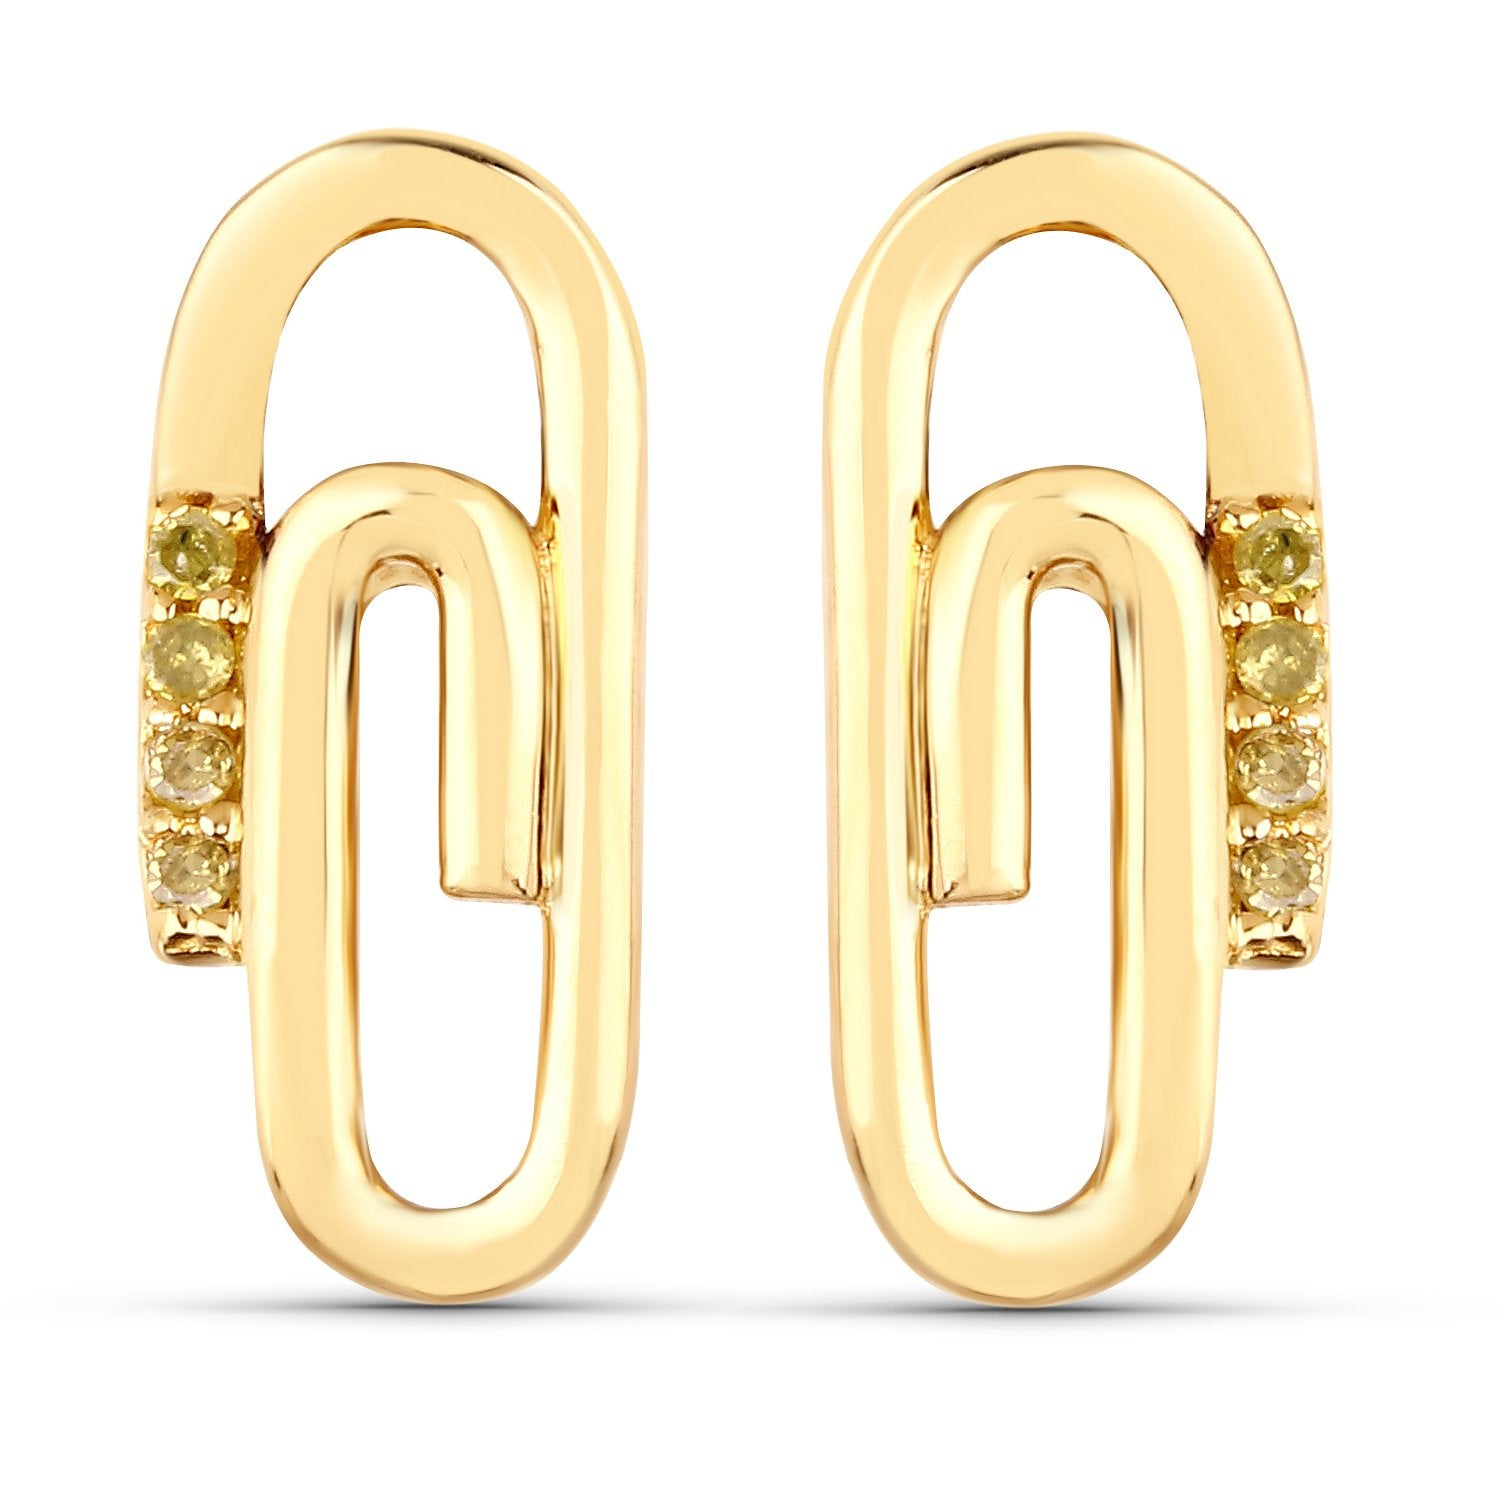 LoveHuang 0.04 Carats Genuine Yellow Diamond (I-J, I2-I3) Paperclip Stud Earrings Solid .925 Sterling Silver With 18KT Yellow Gold Plating